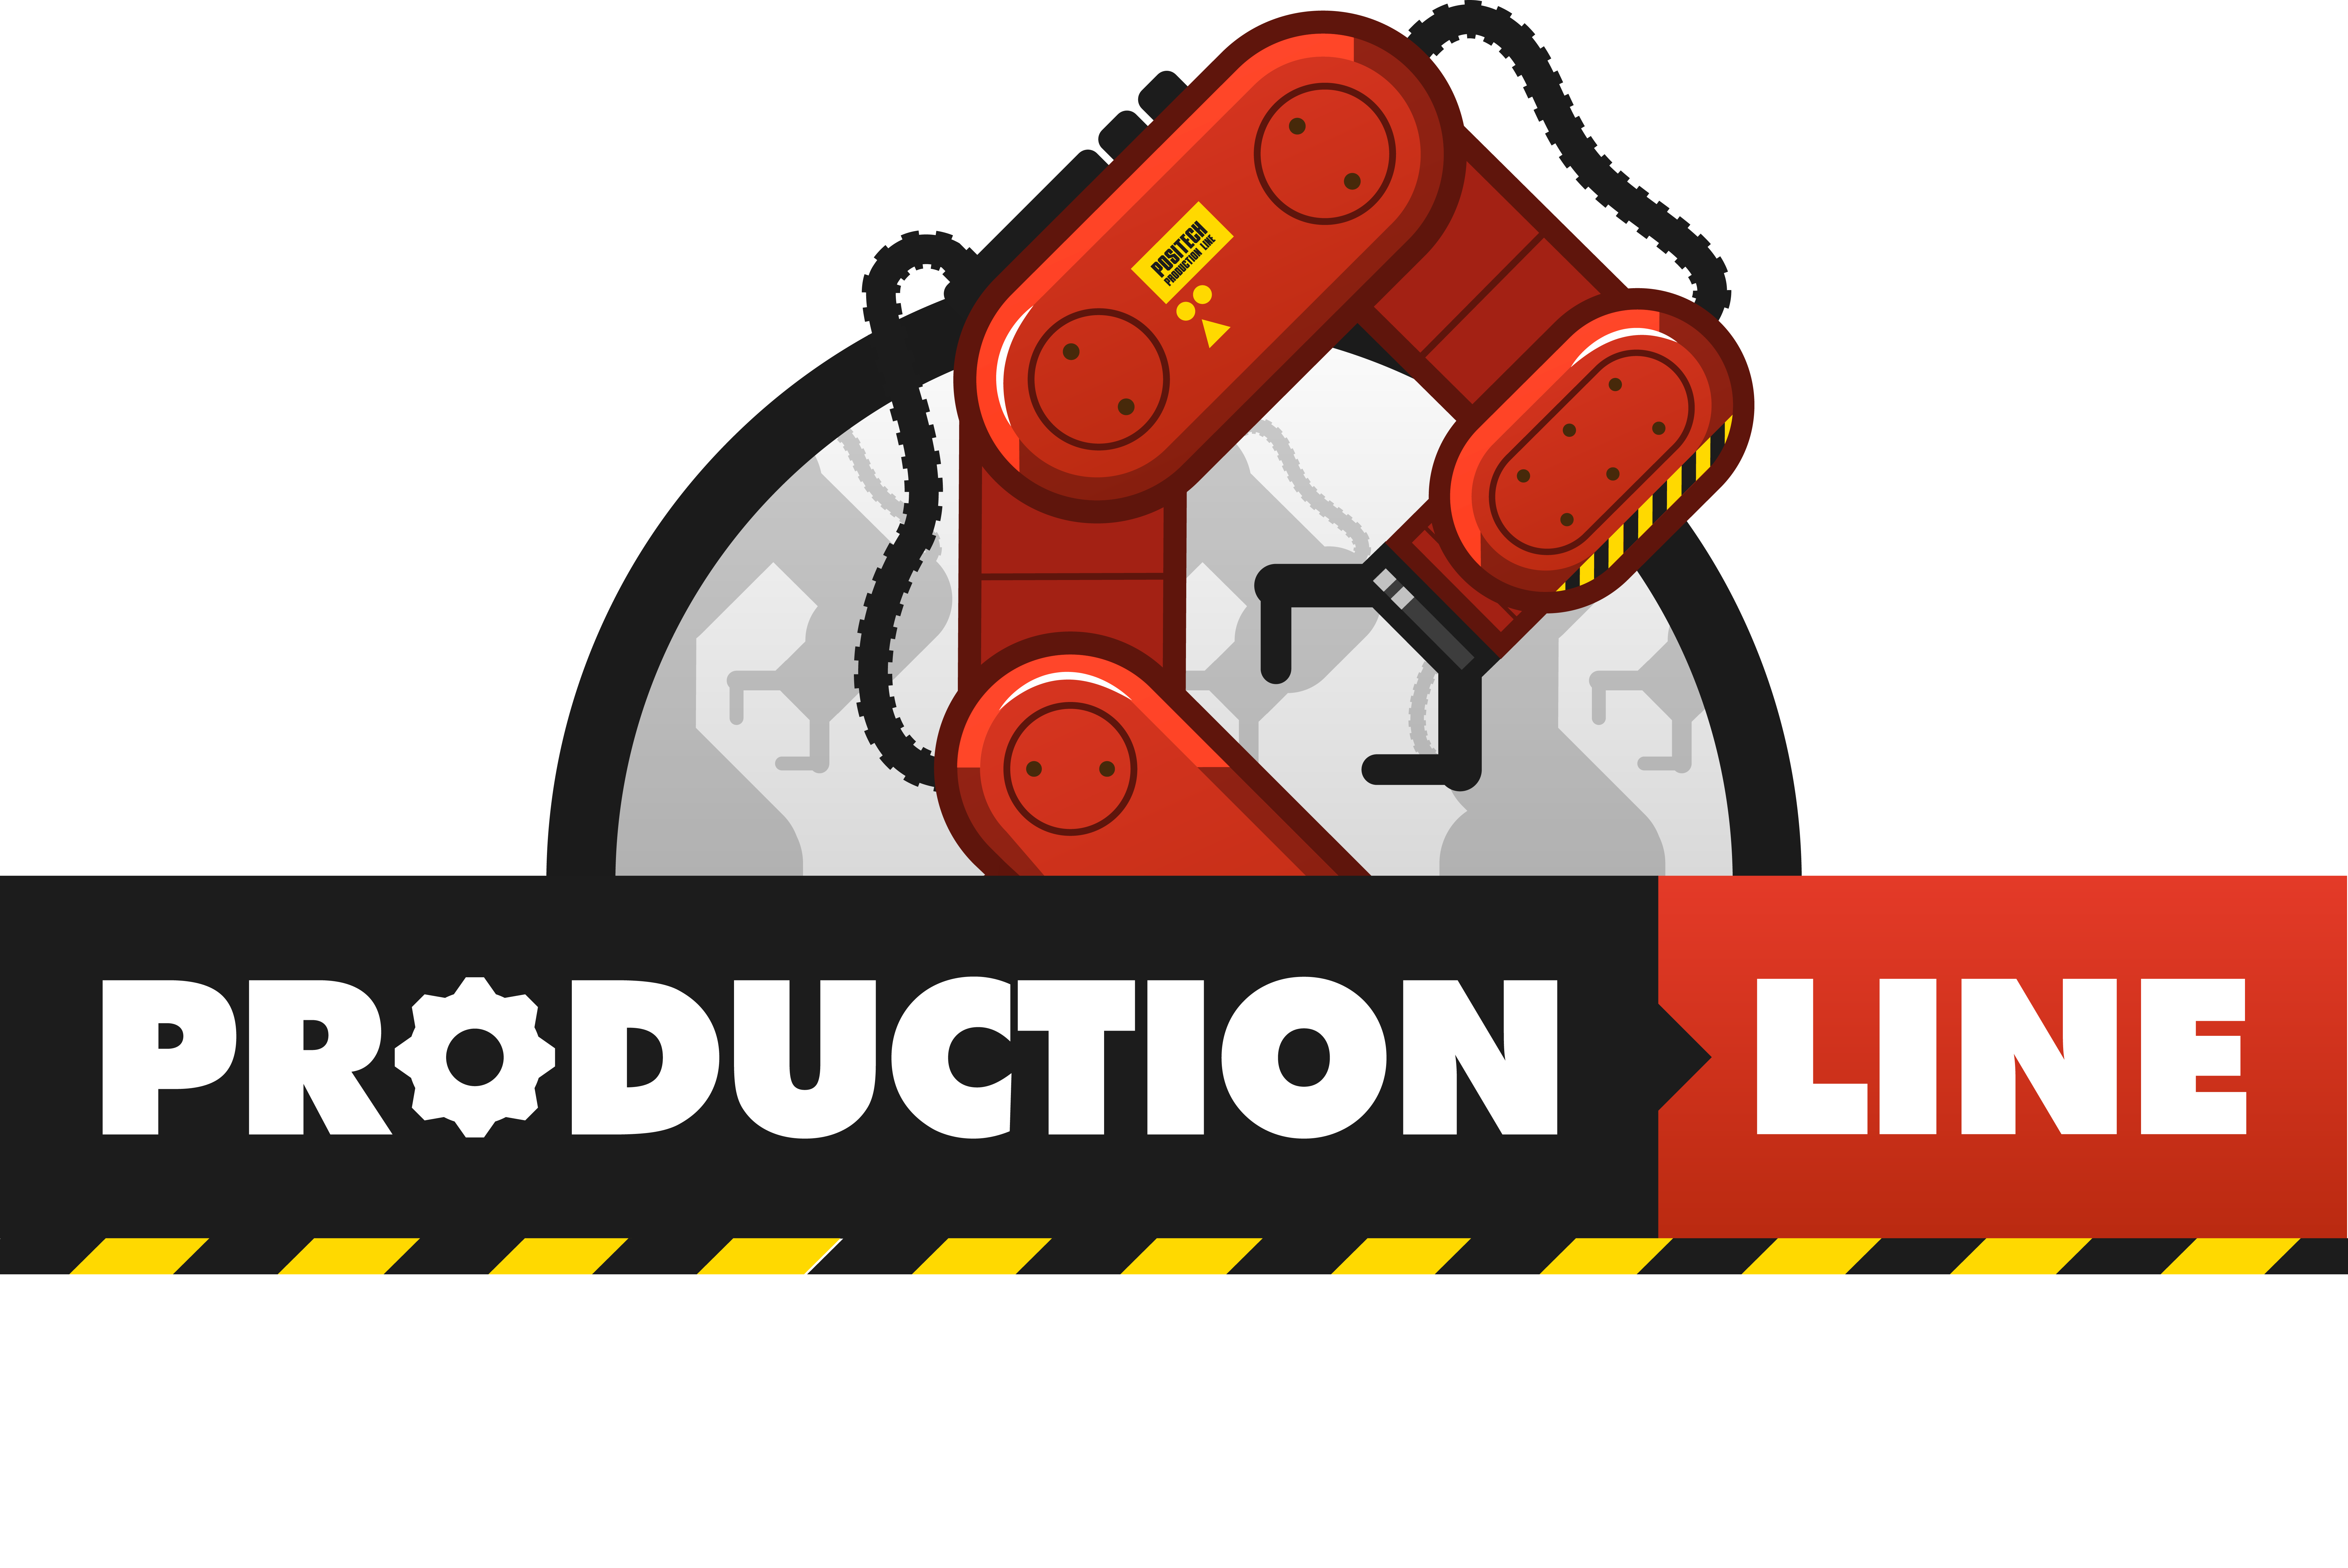 Update! Production Line